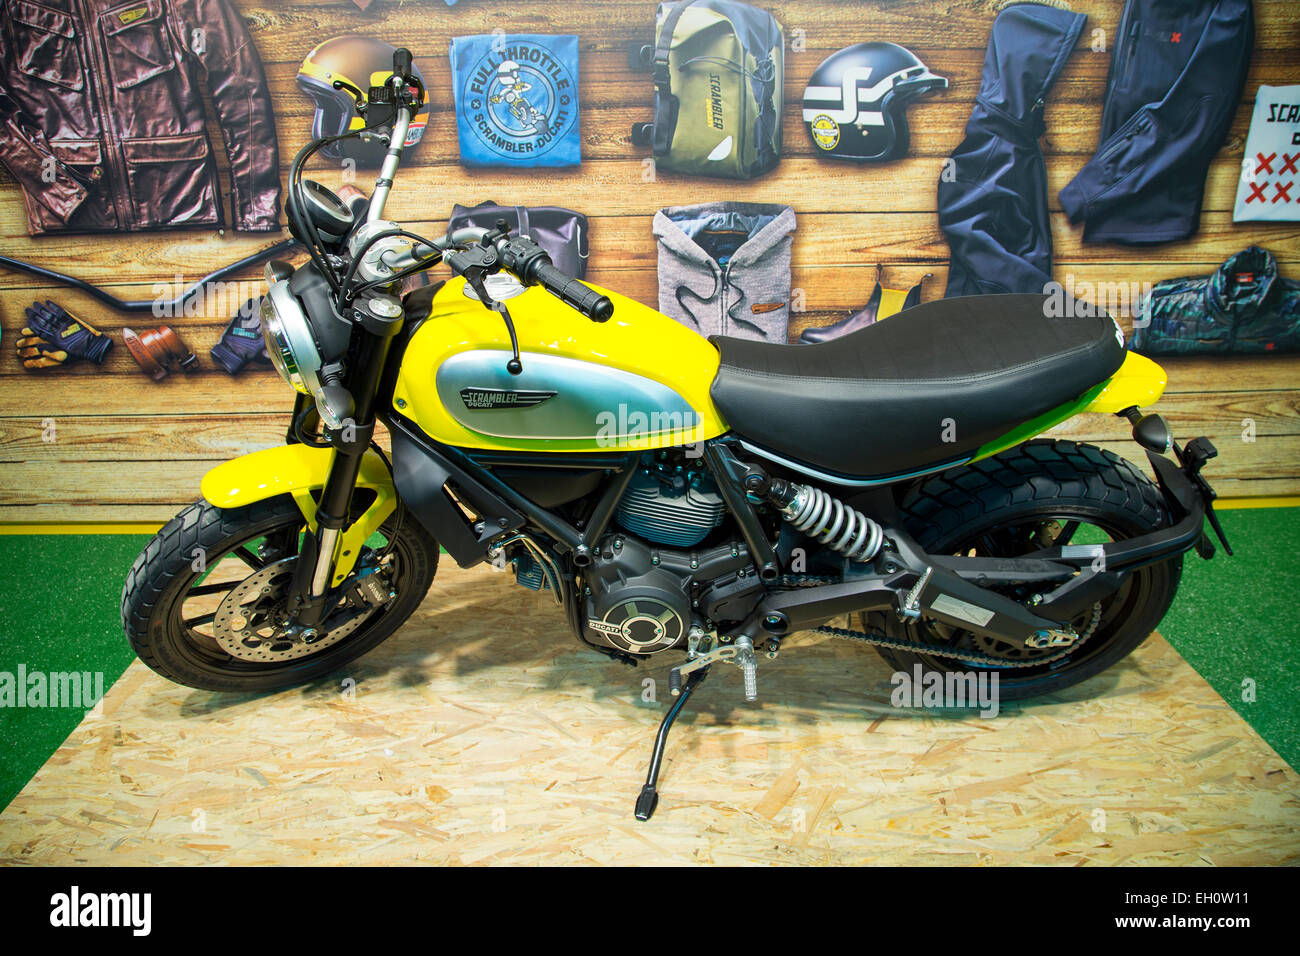 ISTANBUL, TURKEY - FEBRUARY 27, 2015: Ducati Scrambler motorcycle on display at Eurasia motobike expo, CNR Expo - Stock Image